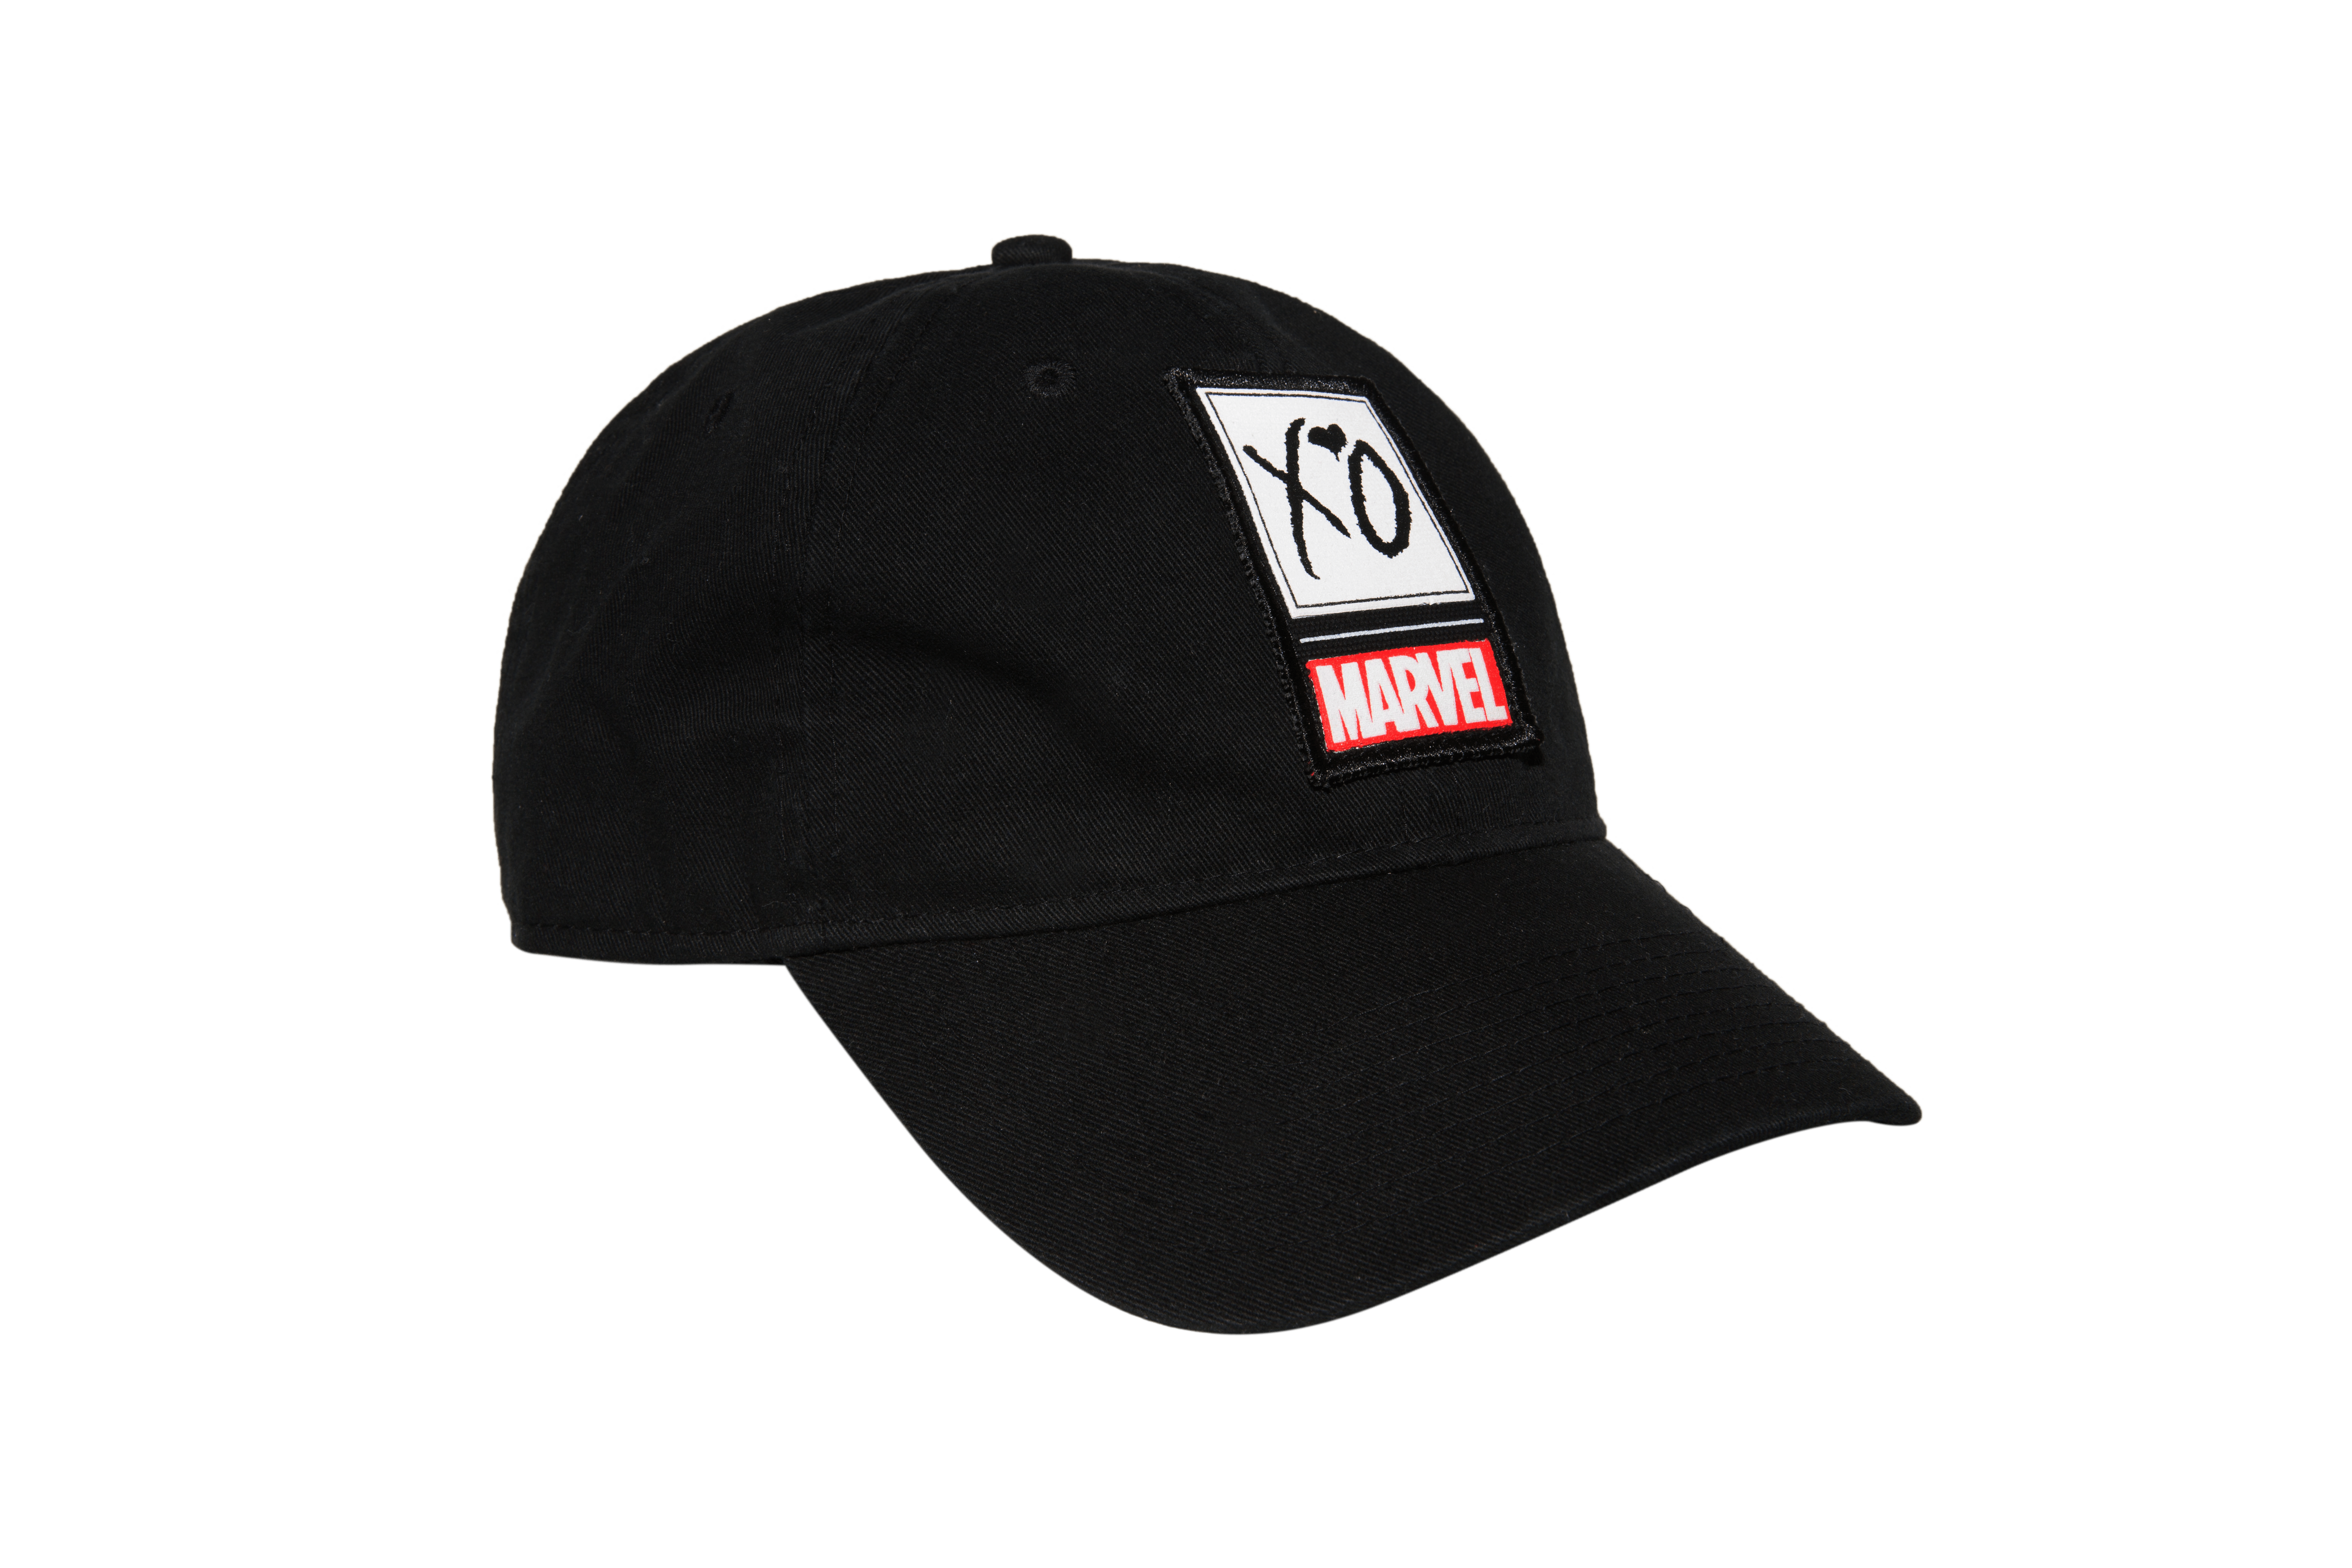 XO Marvel Logo Sports Cap Shot 2